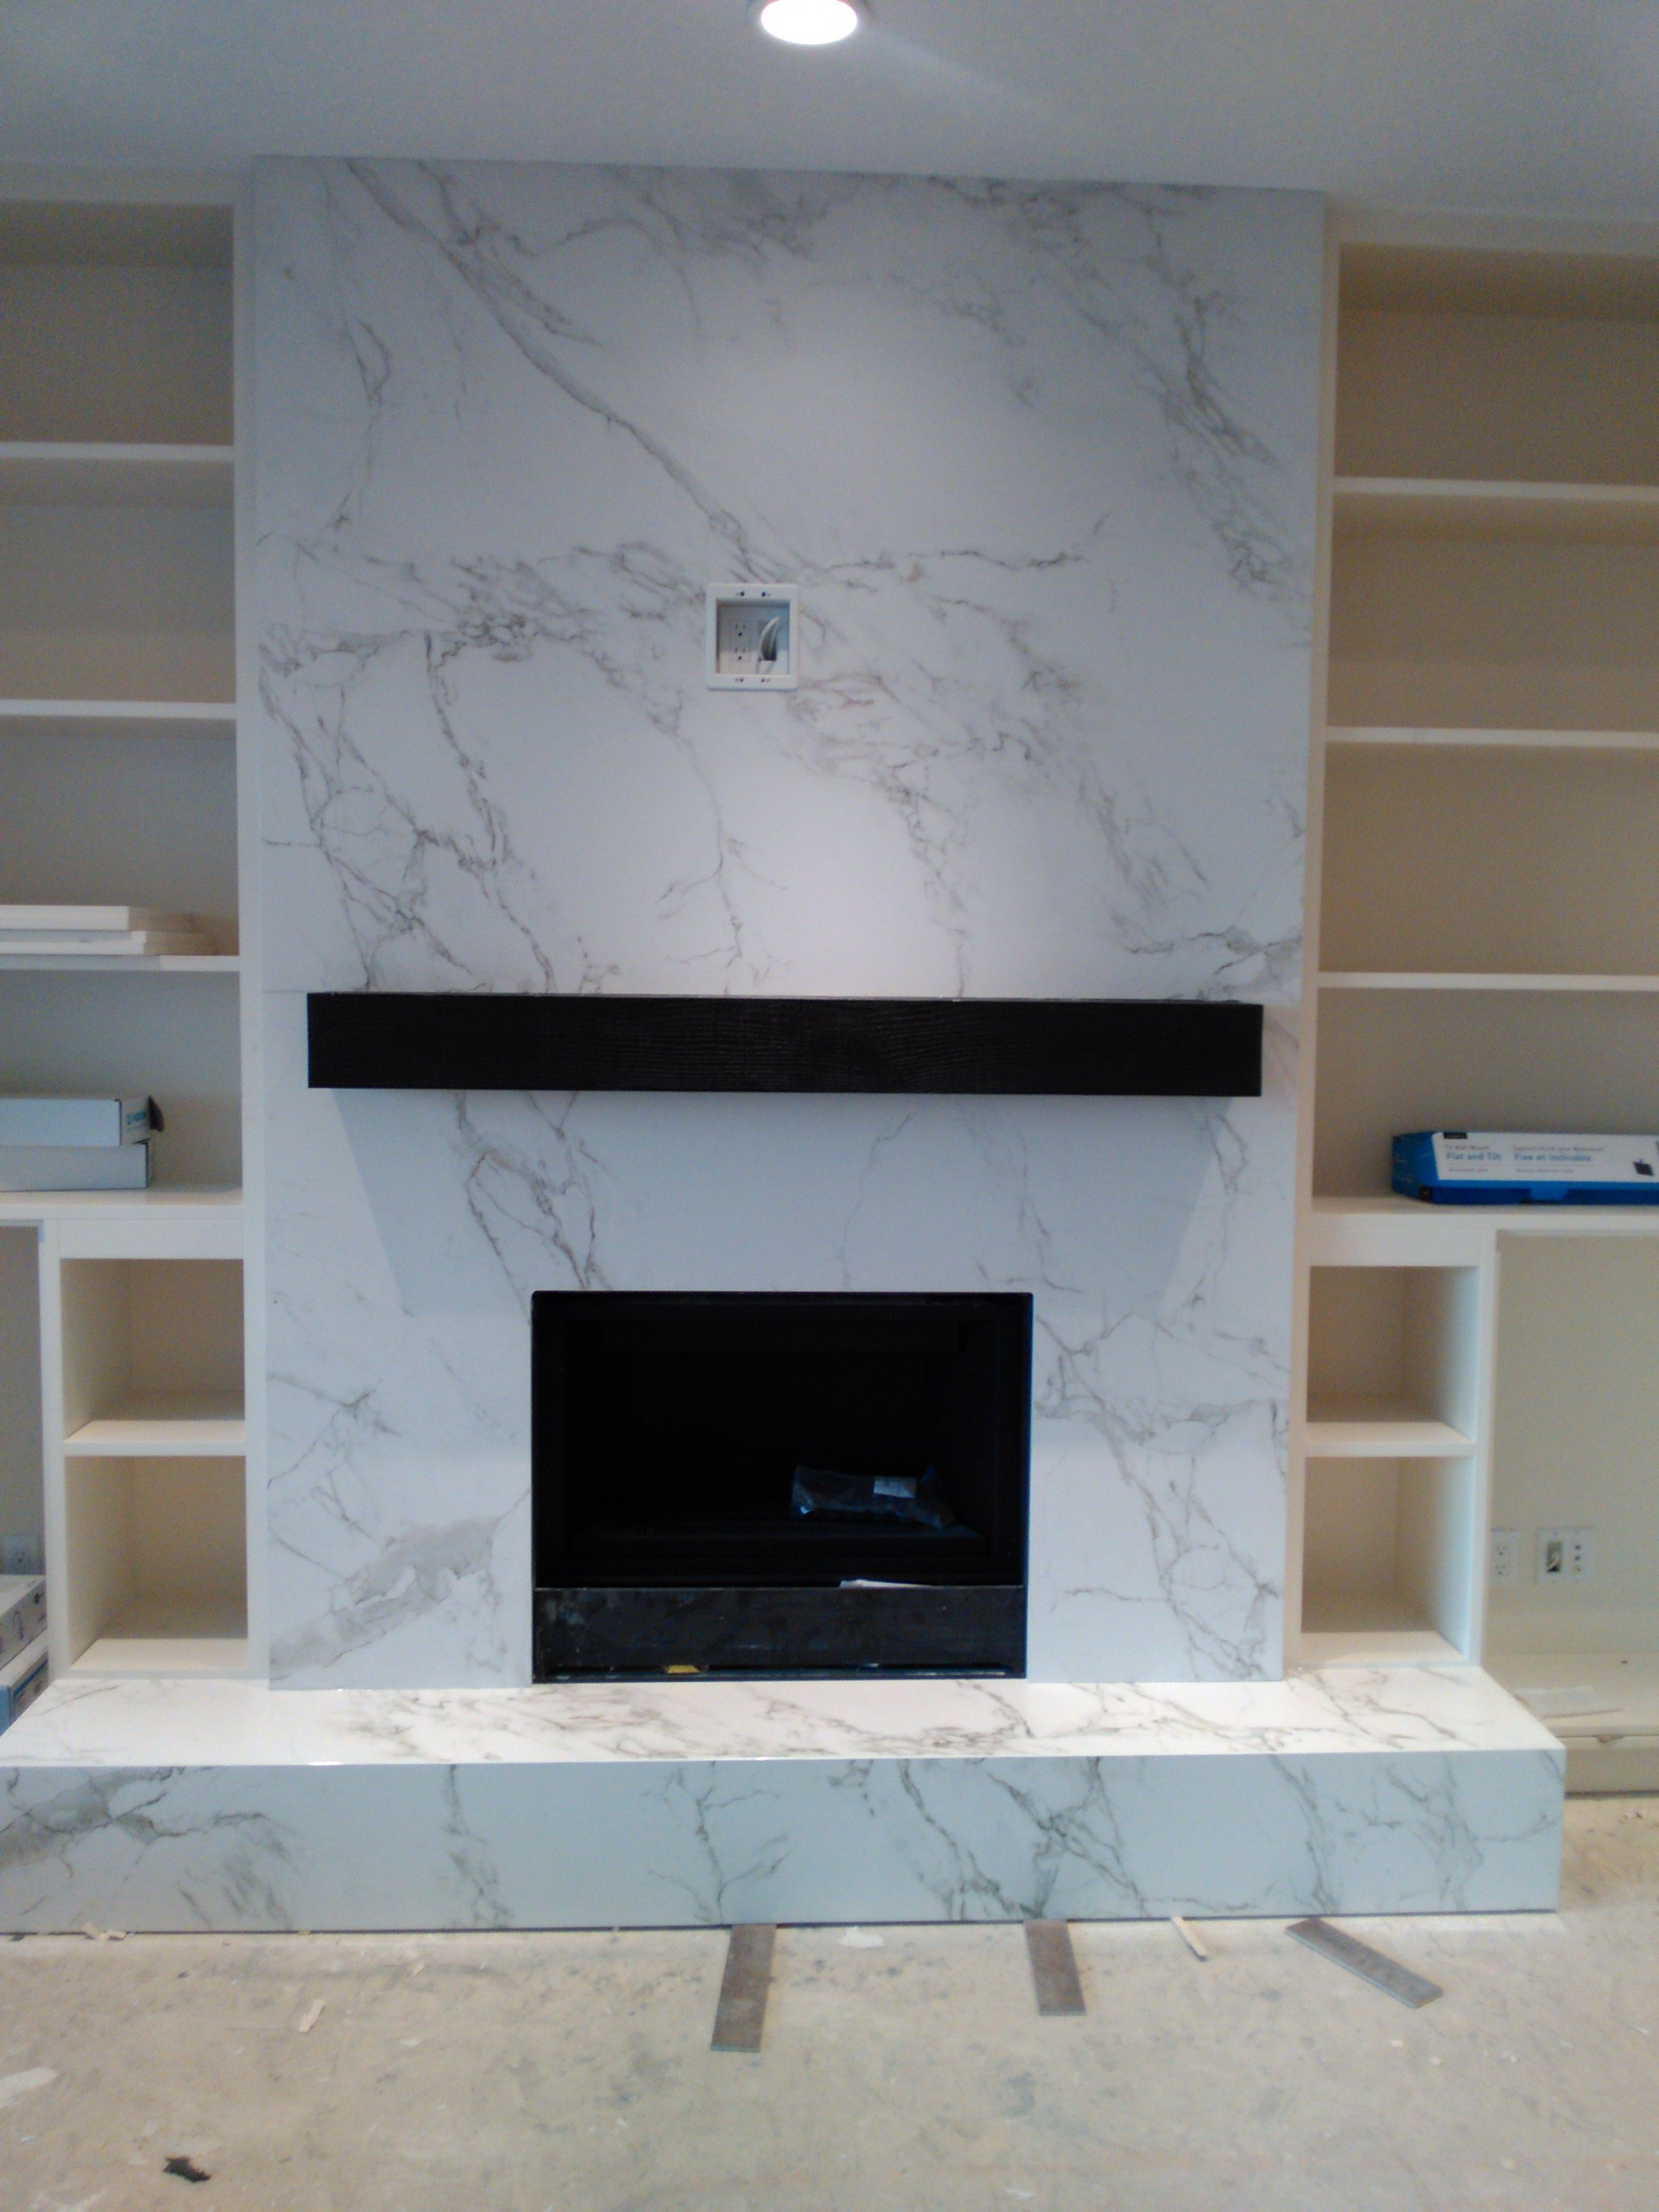 Dekton Fireplace Cladding We Put In This Passed Week